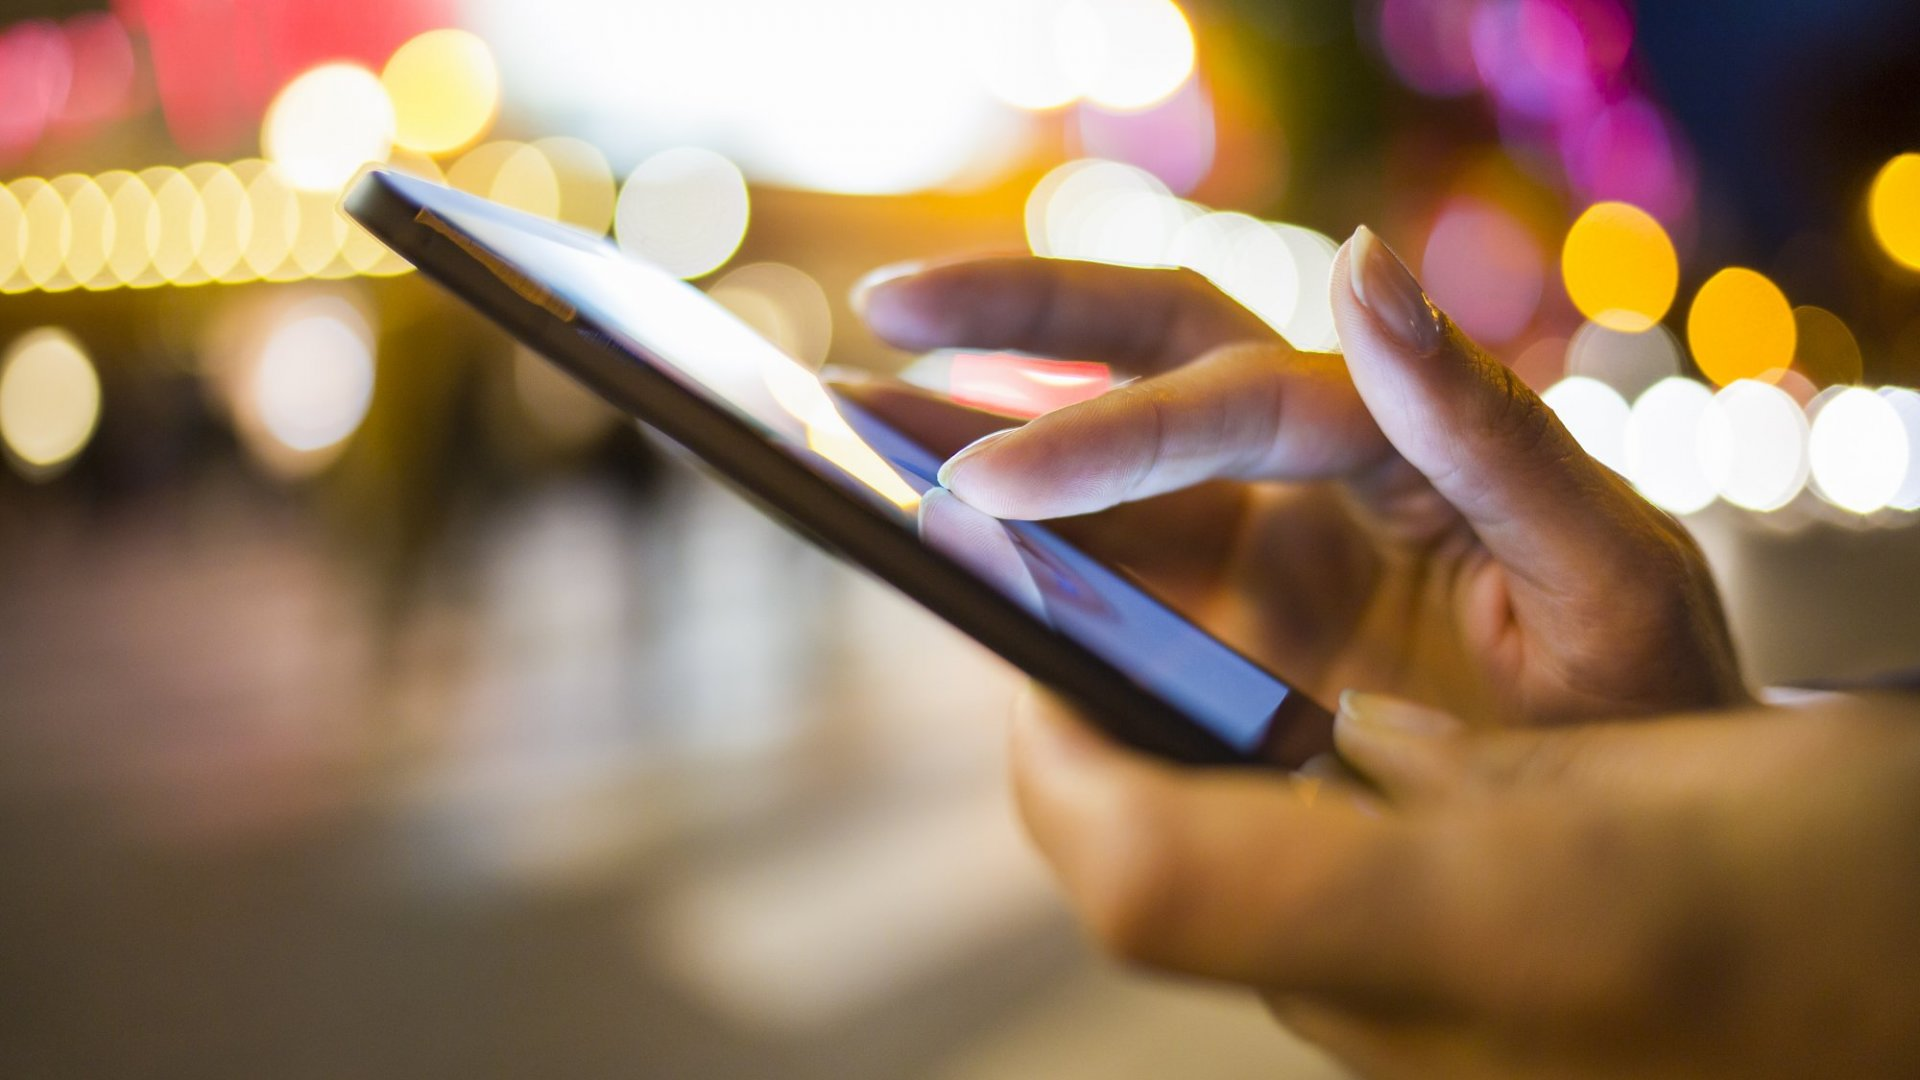 The 3 Keys to Marketing Your App Online This Holiday Season